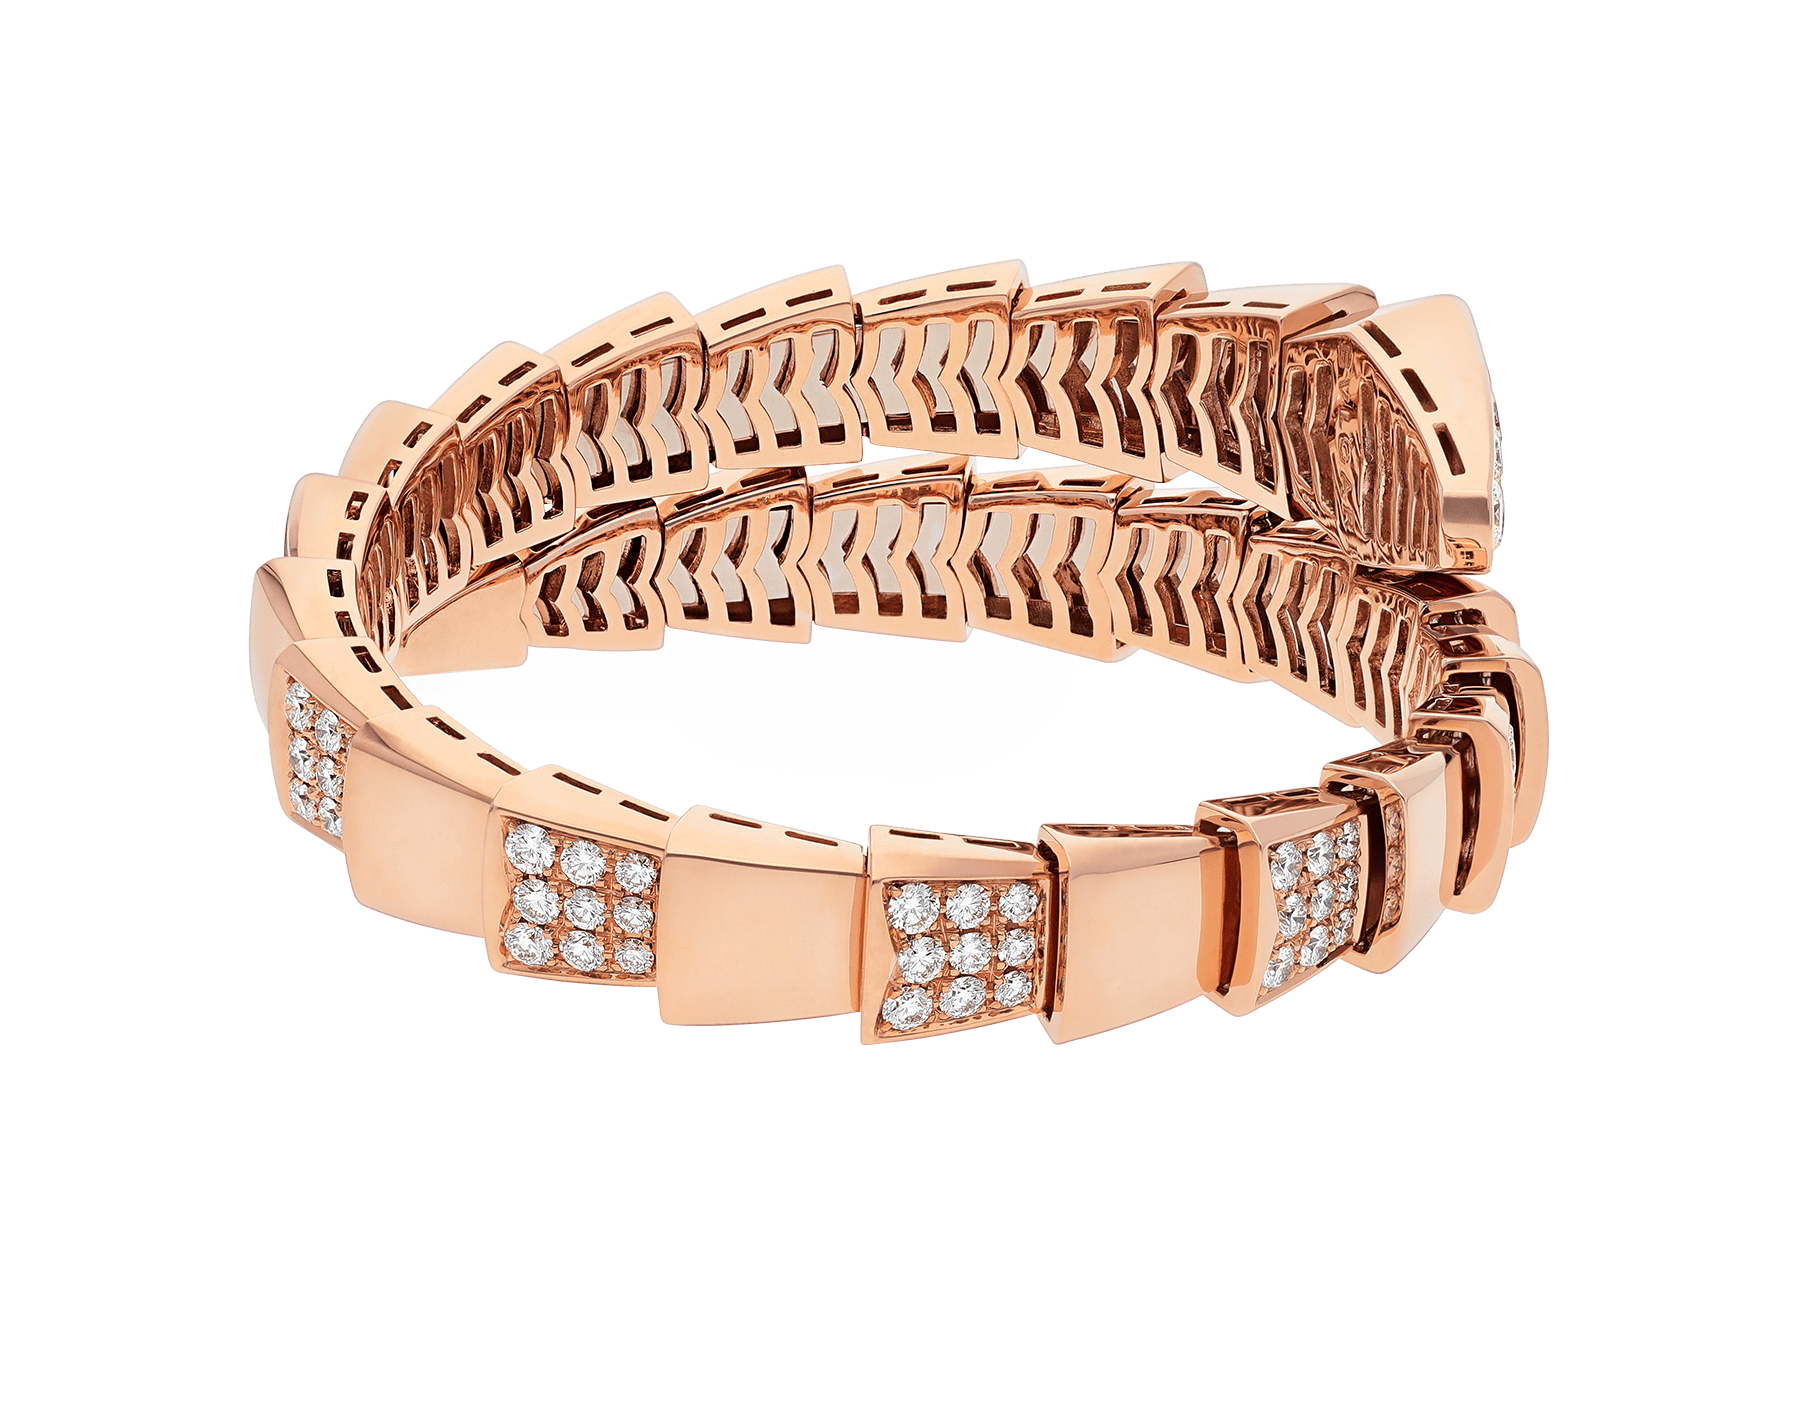 Serpenti Viper one-coil bracelet in 18 kt rose gold, set with demi pavé diamonds. BR855312 image 3